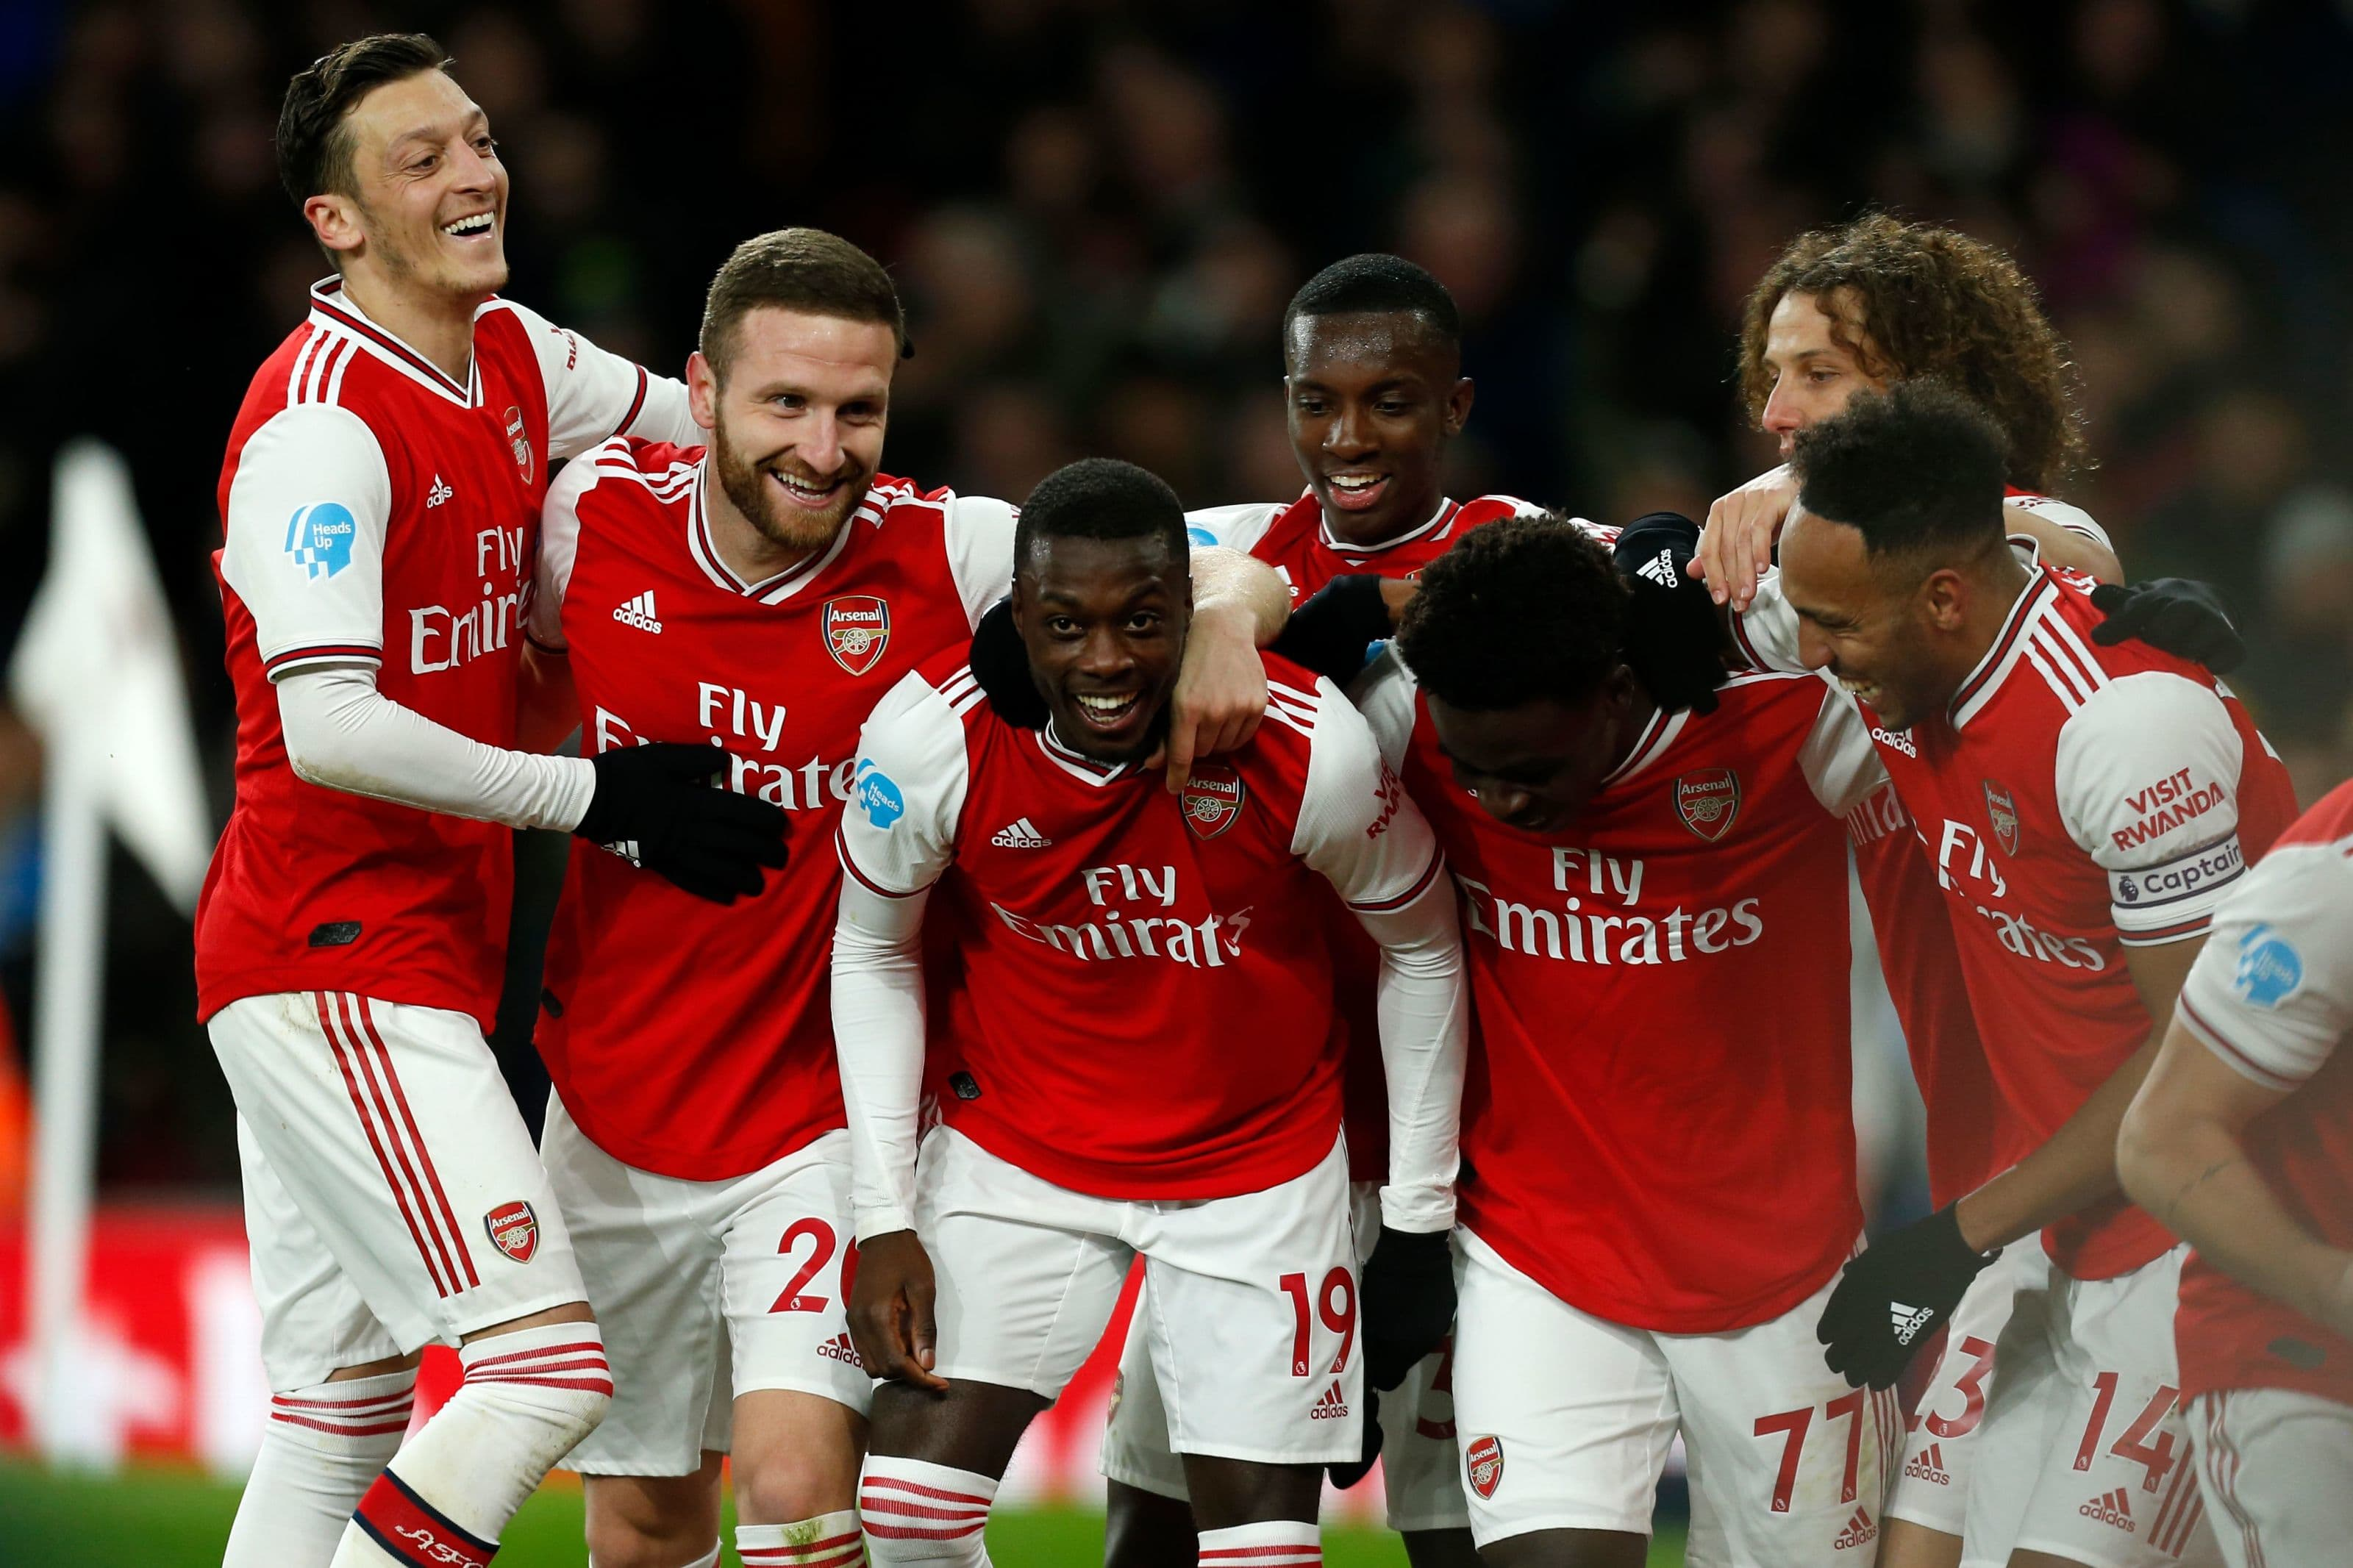 Arsenal vs Newcastle player ratings: Last summer's dream